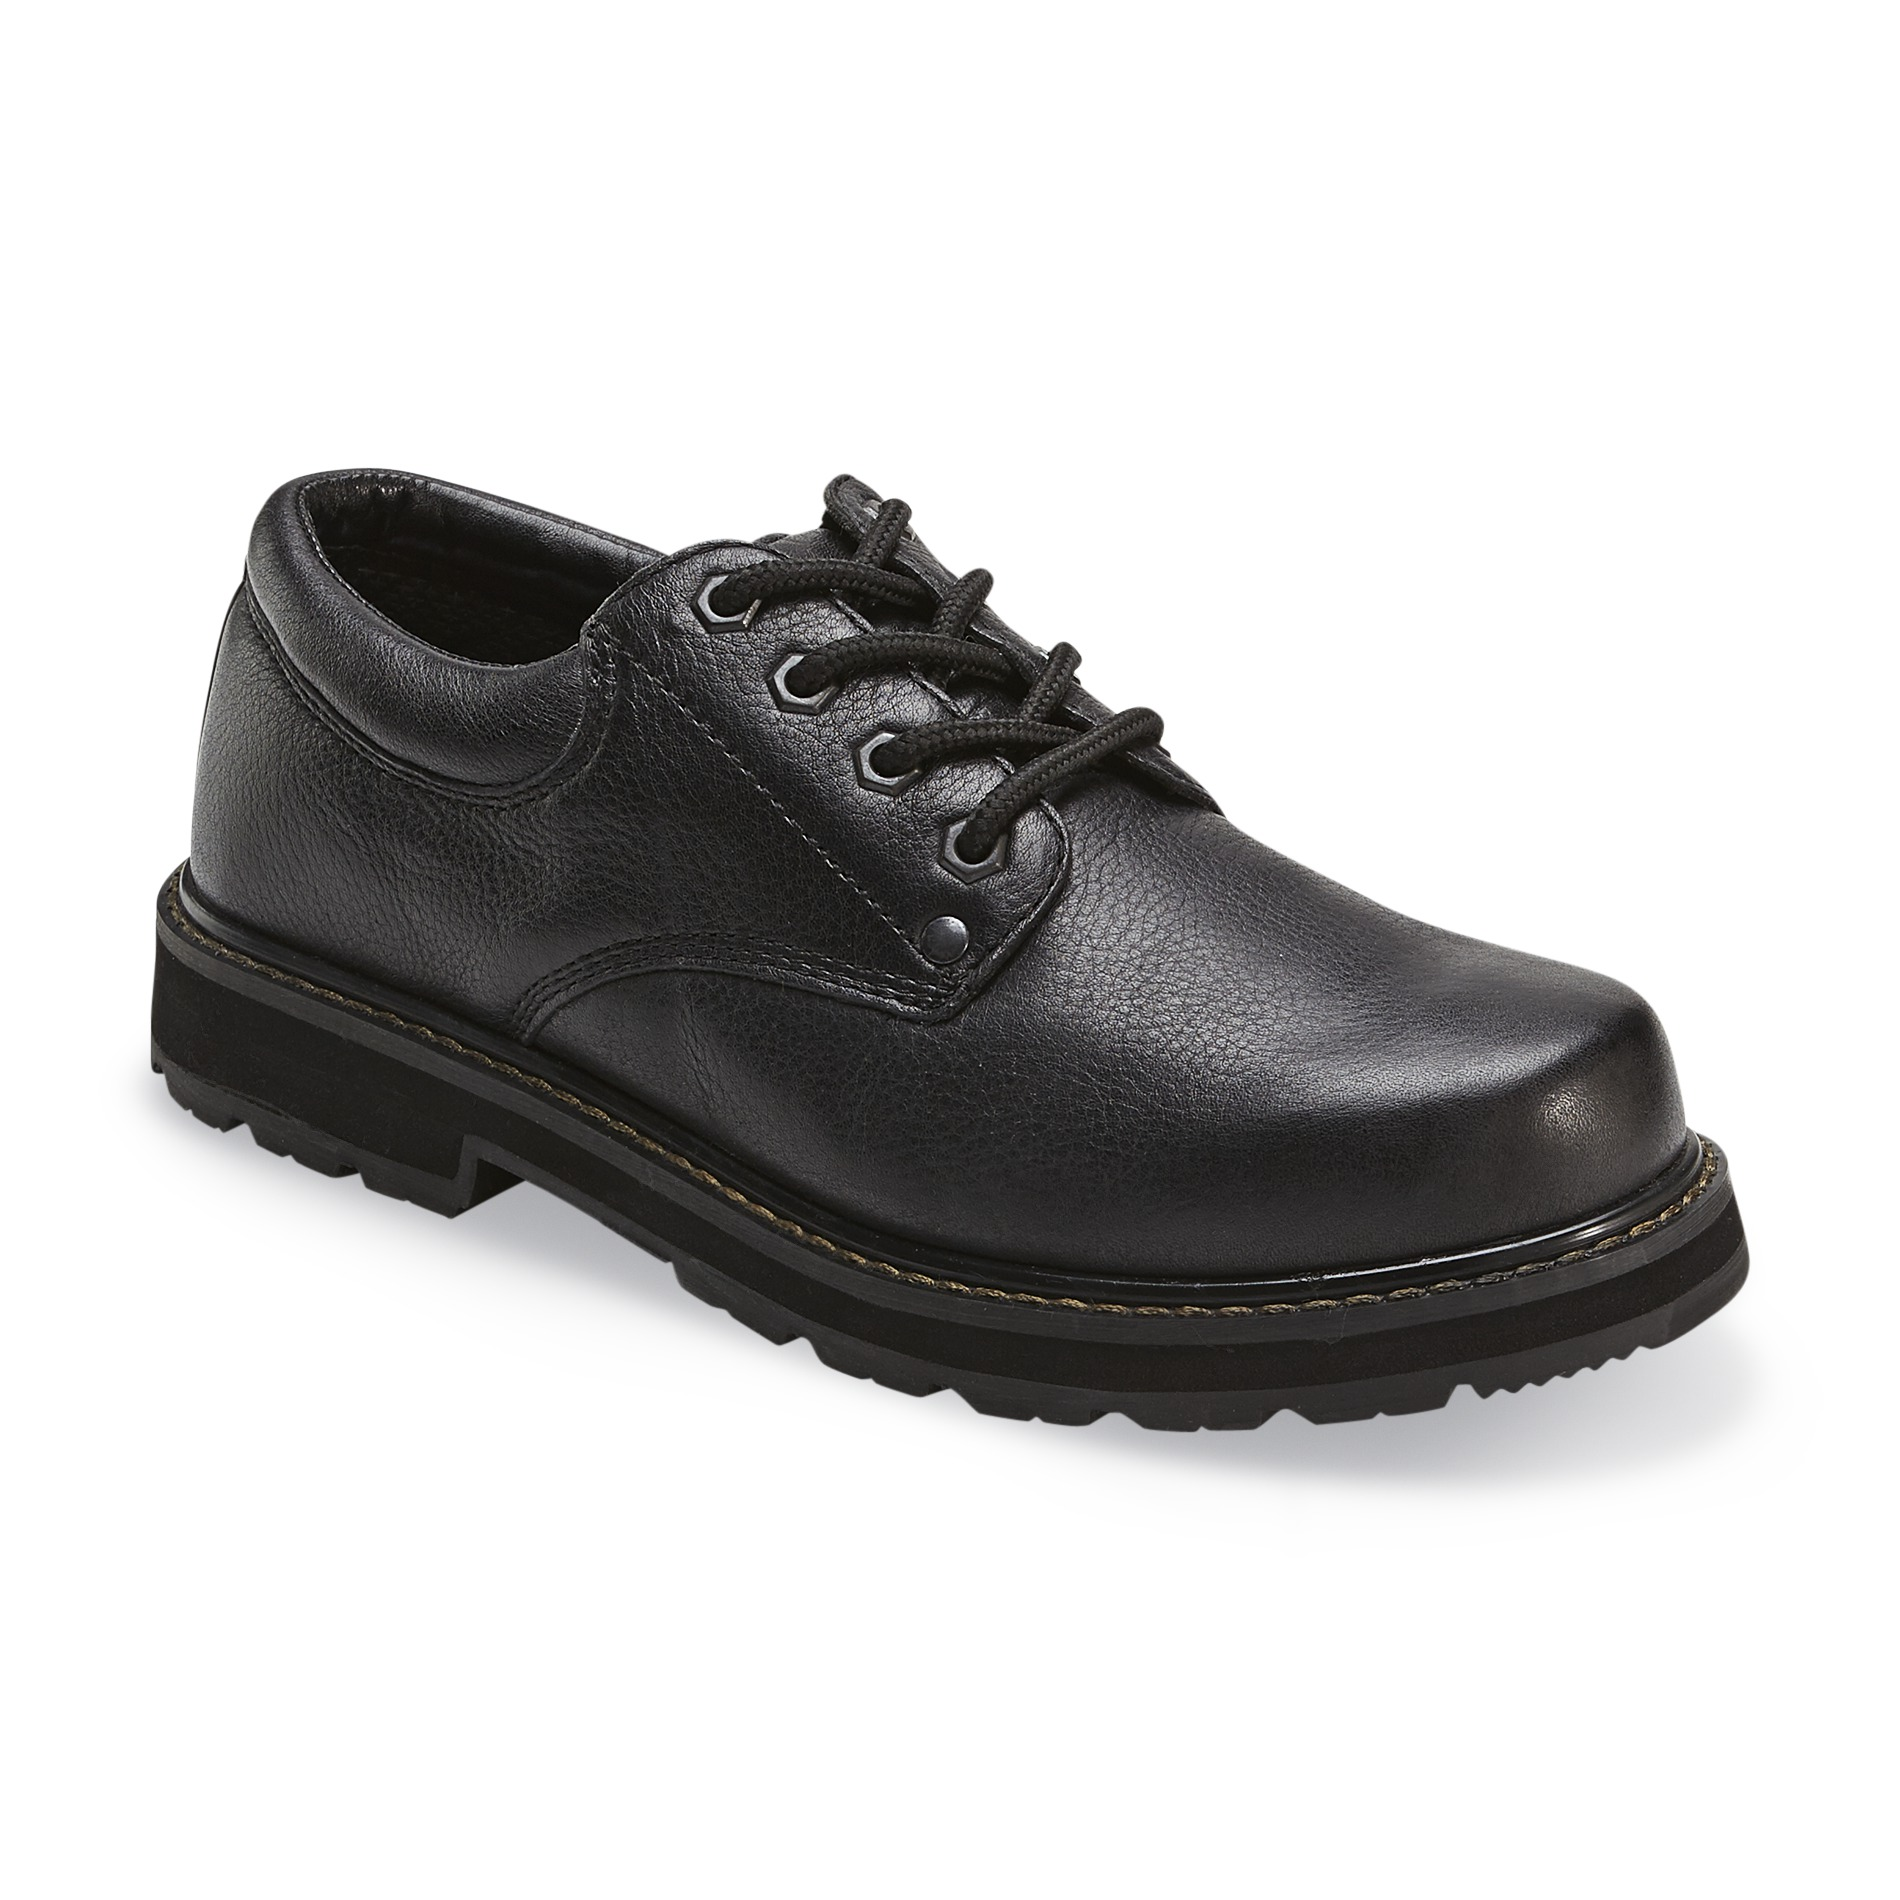 work shoes dr. schollu0027s menu0027s harrington slip resistant work shoe wide width available  - black HKZUPTR